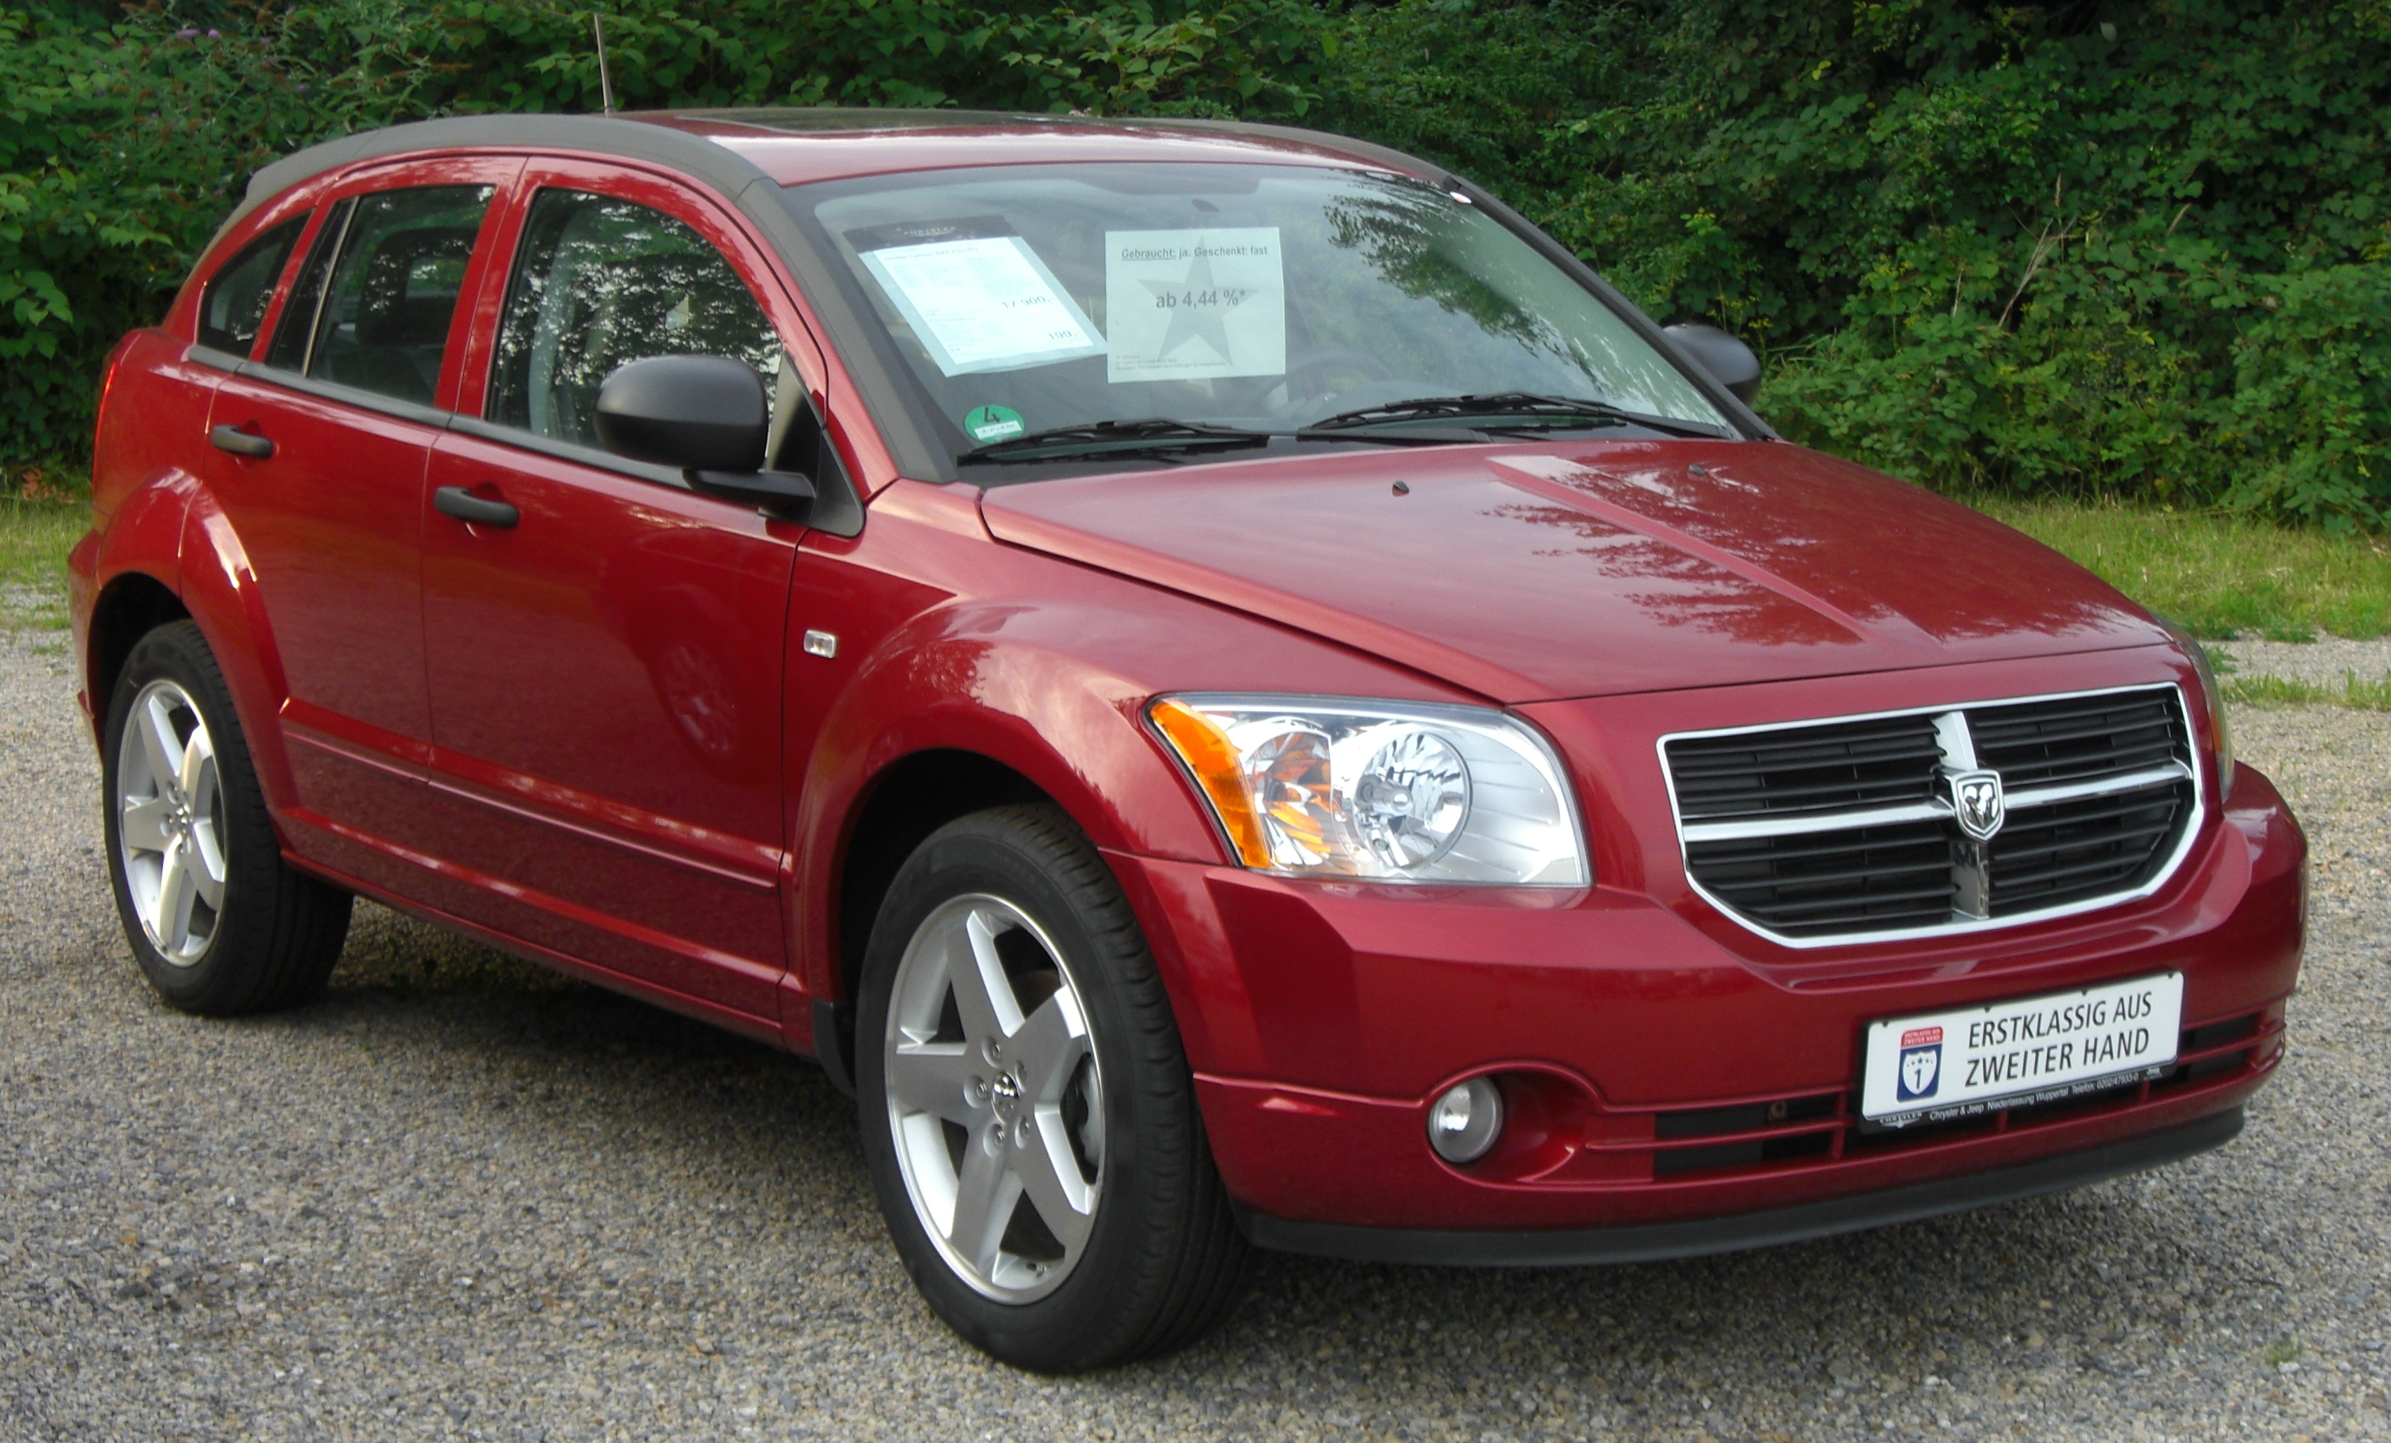 dodge caliber 2 0 crd technical details history photos. Black Bedroom Furniture Sets. Home Design Ideas